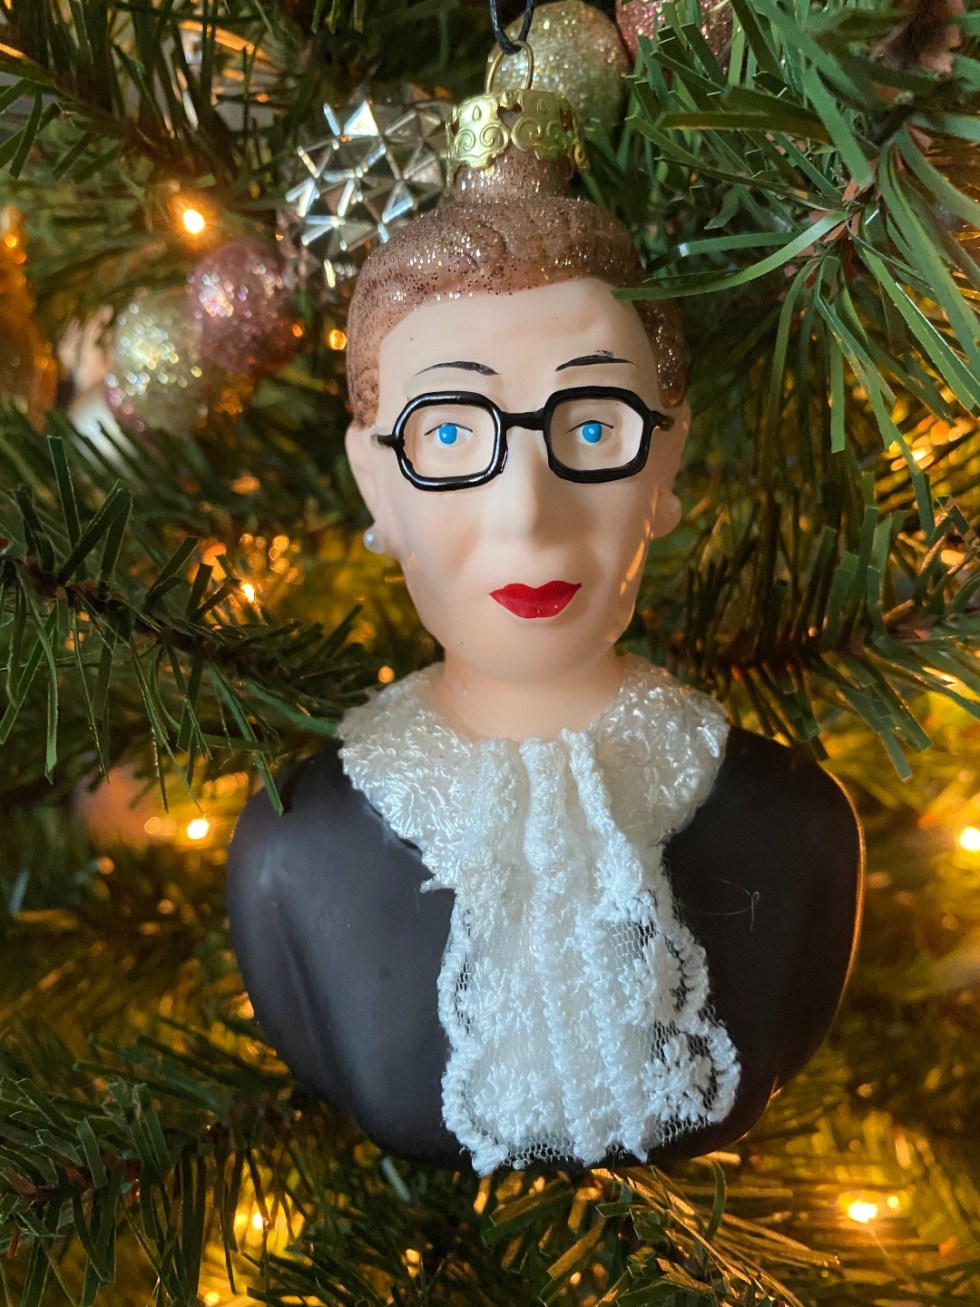 2020 Holidays: Unique Christmas Ornaments - I'm Fixin' To - @mbg0112 |Unique Christmas Ornaments by popular NC life and style blog, I'm Fixin' To: image of a RBG ornament.